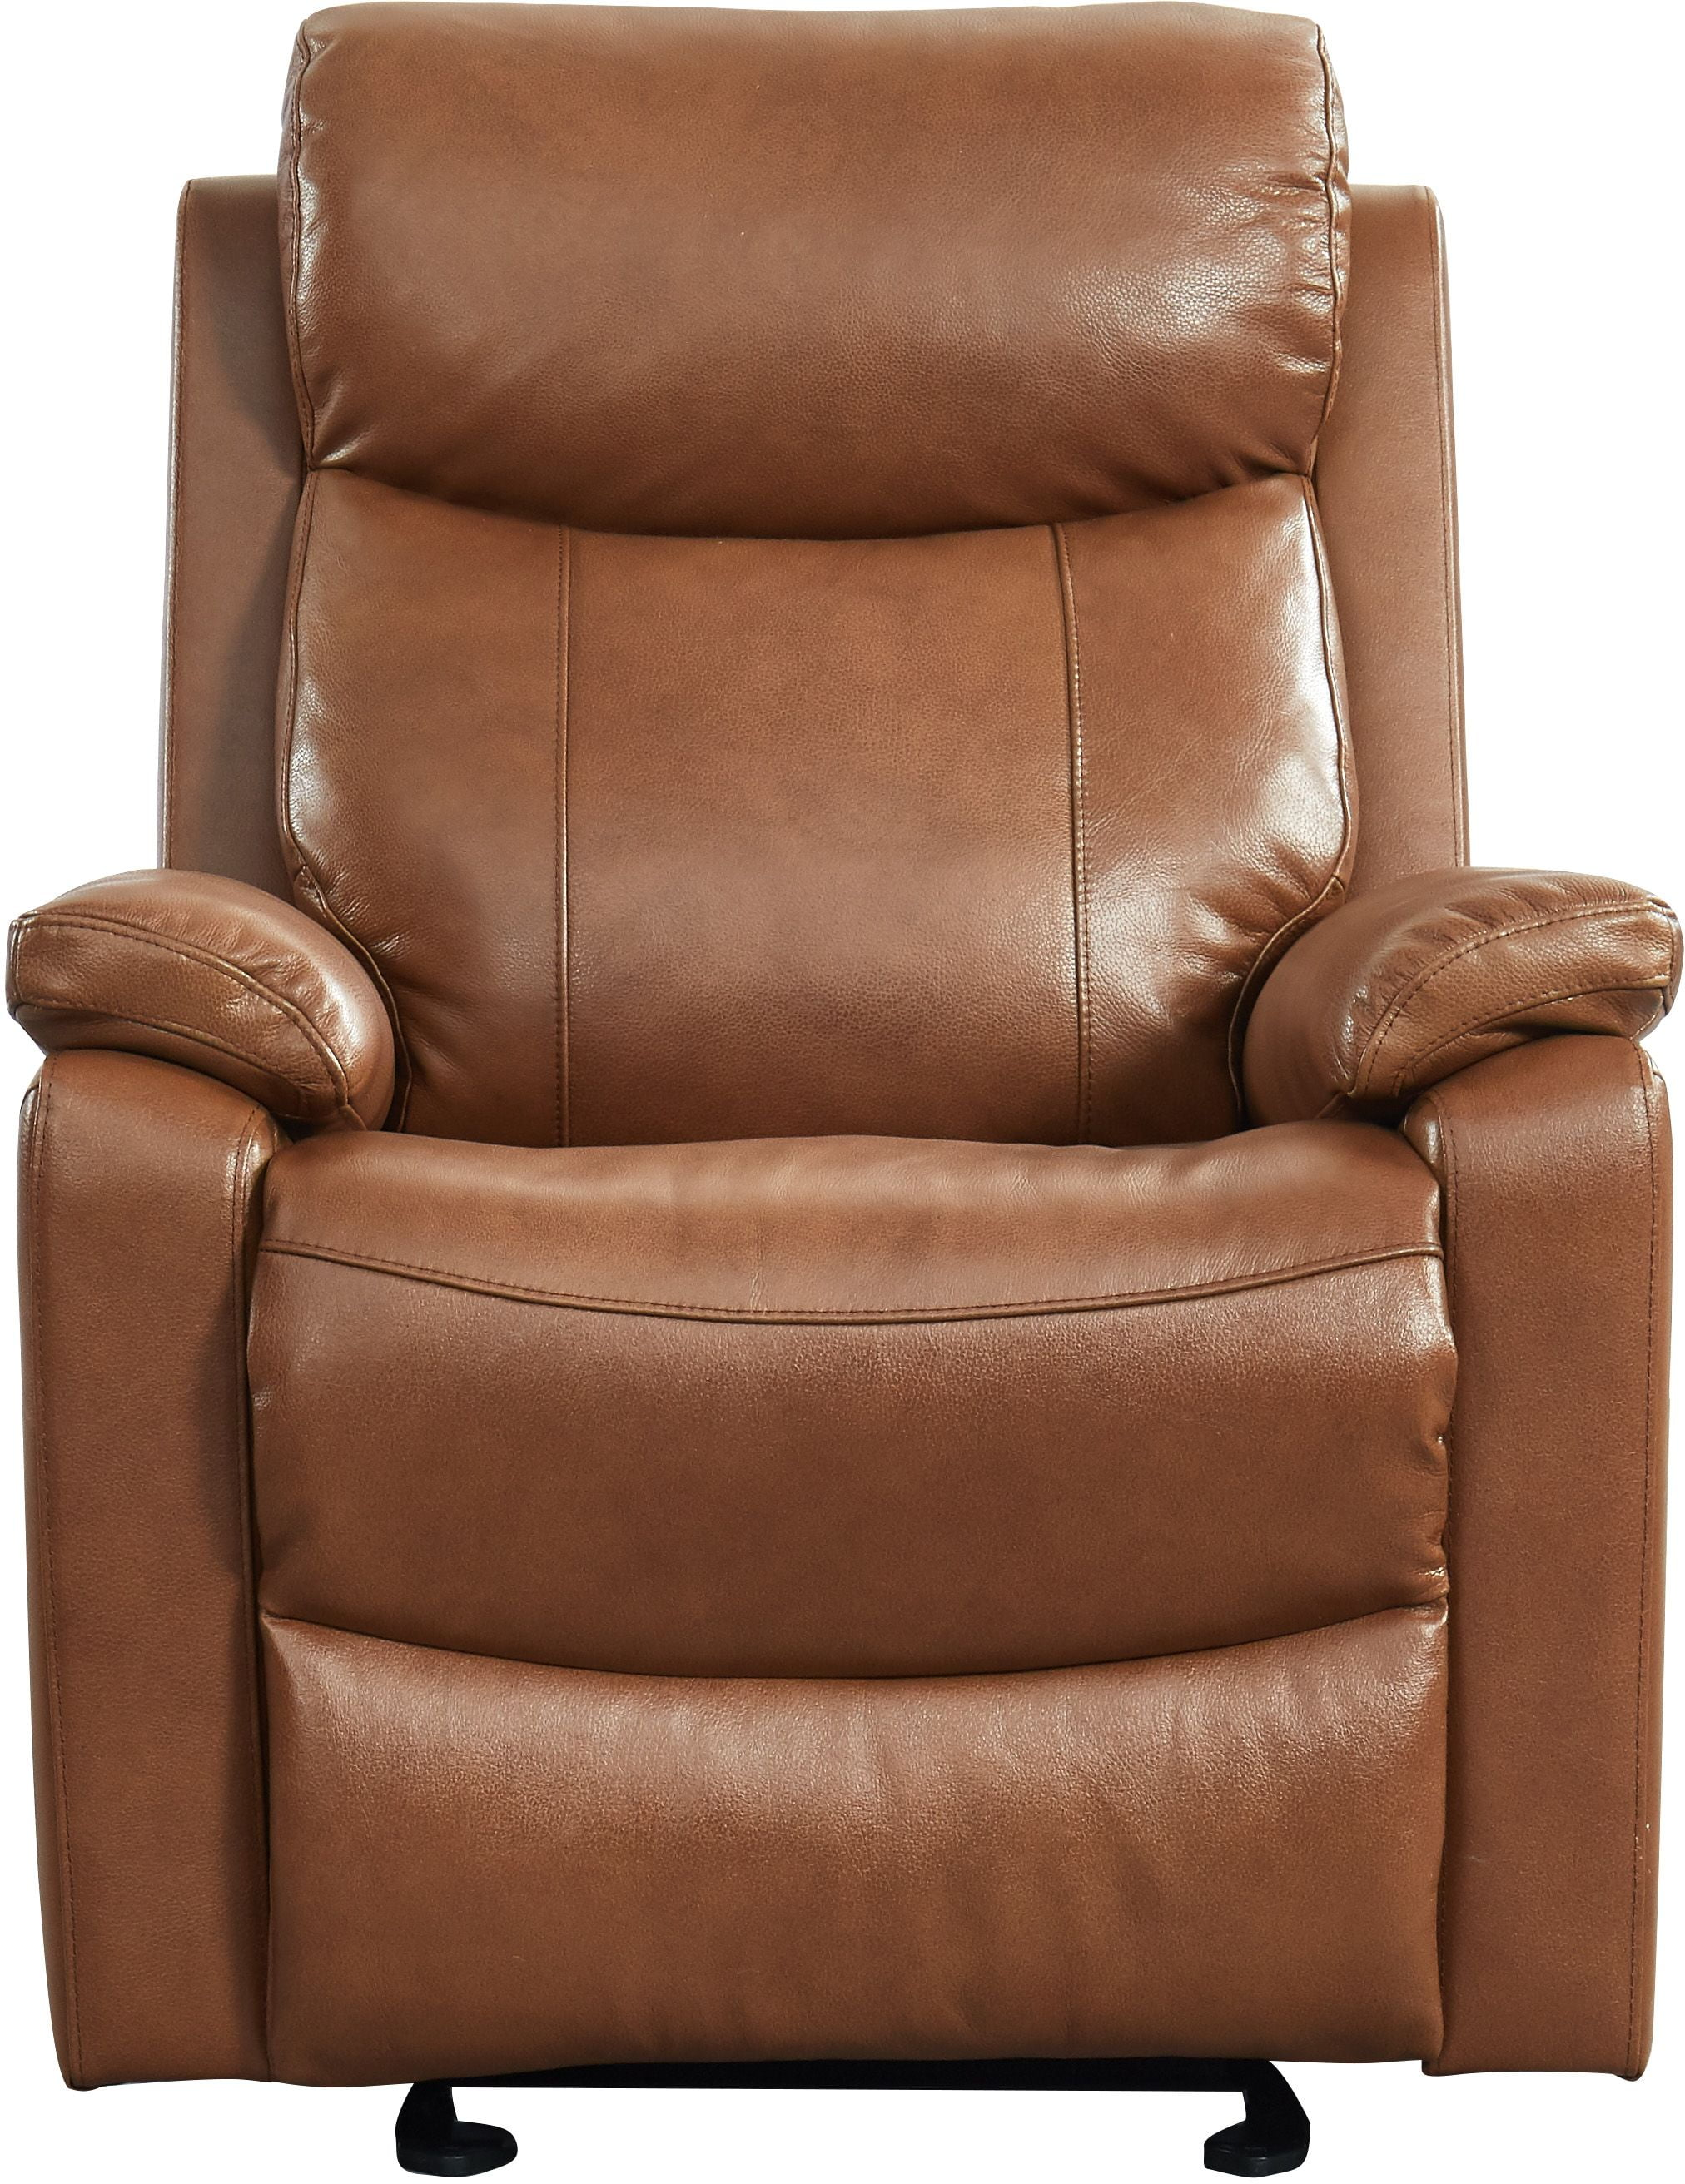 Prime Westport Cole Peanut Brown Leather Glider Recliner Pdpeps Interior Chair Design Pdpepsorg